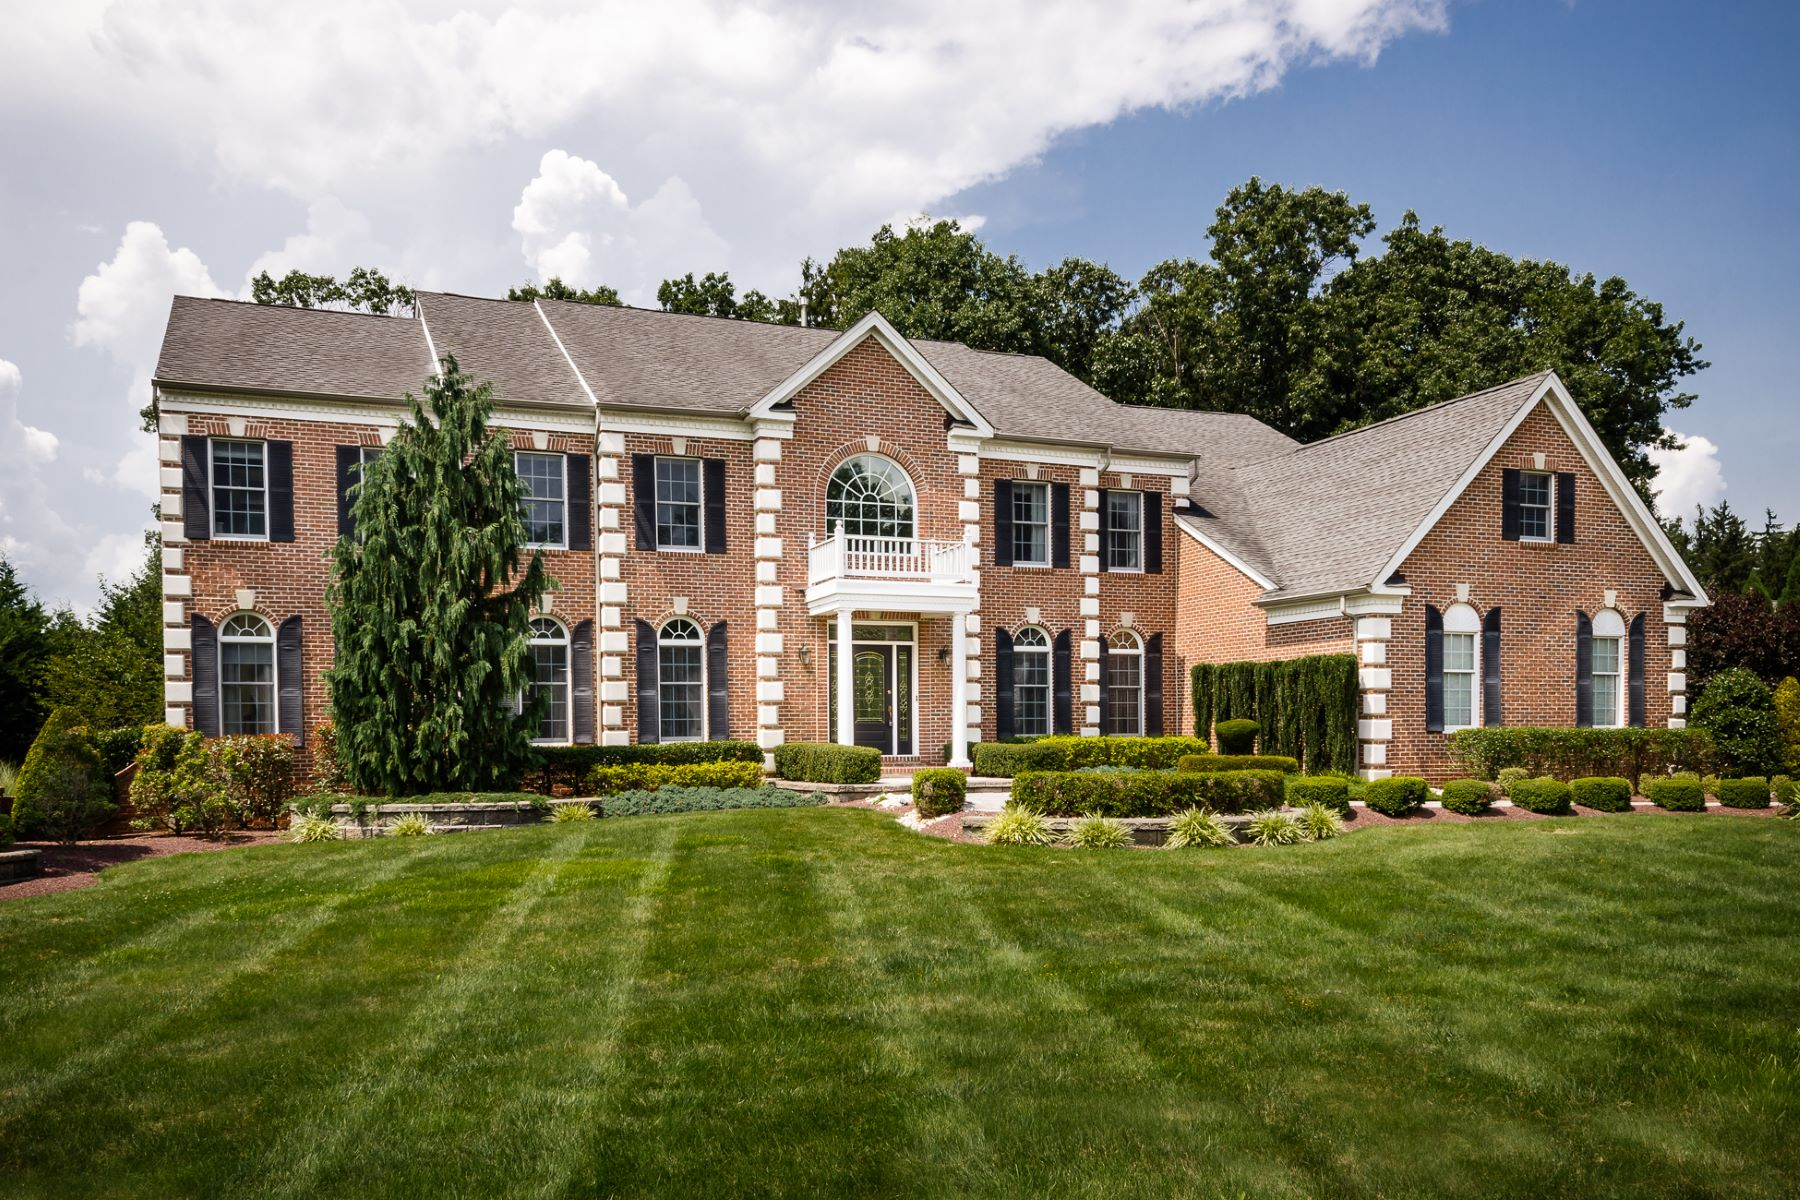 独户住宅 为 销售 在 Cranbury Colonial Celebrates Toll Brothers Luxury 14 Shady Brook Lane 克兰伯里, 08512 美国